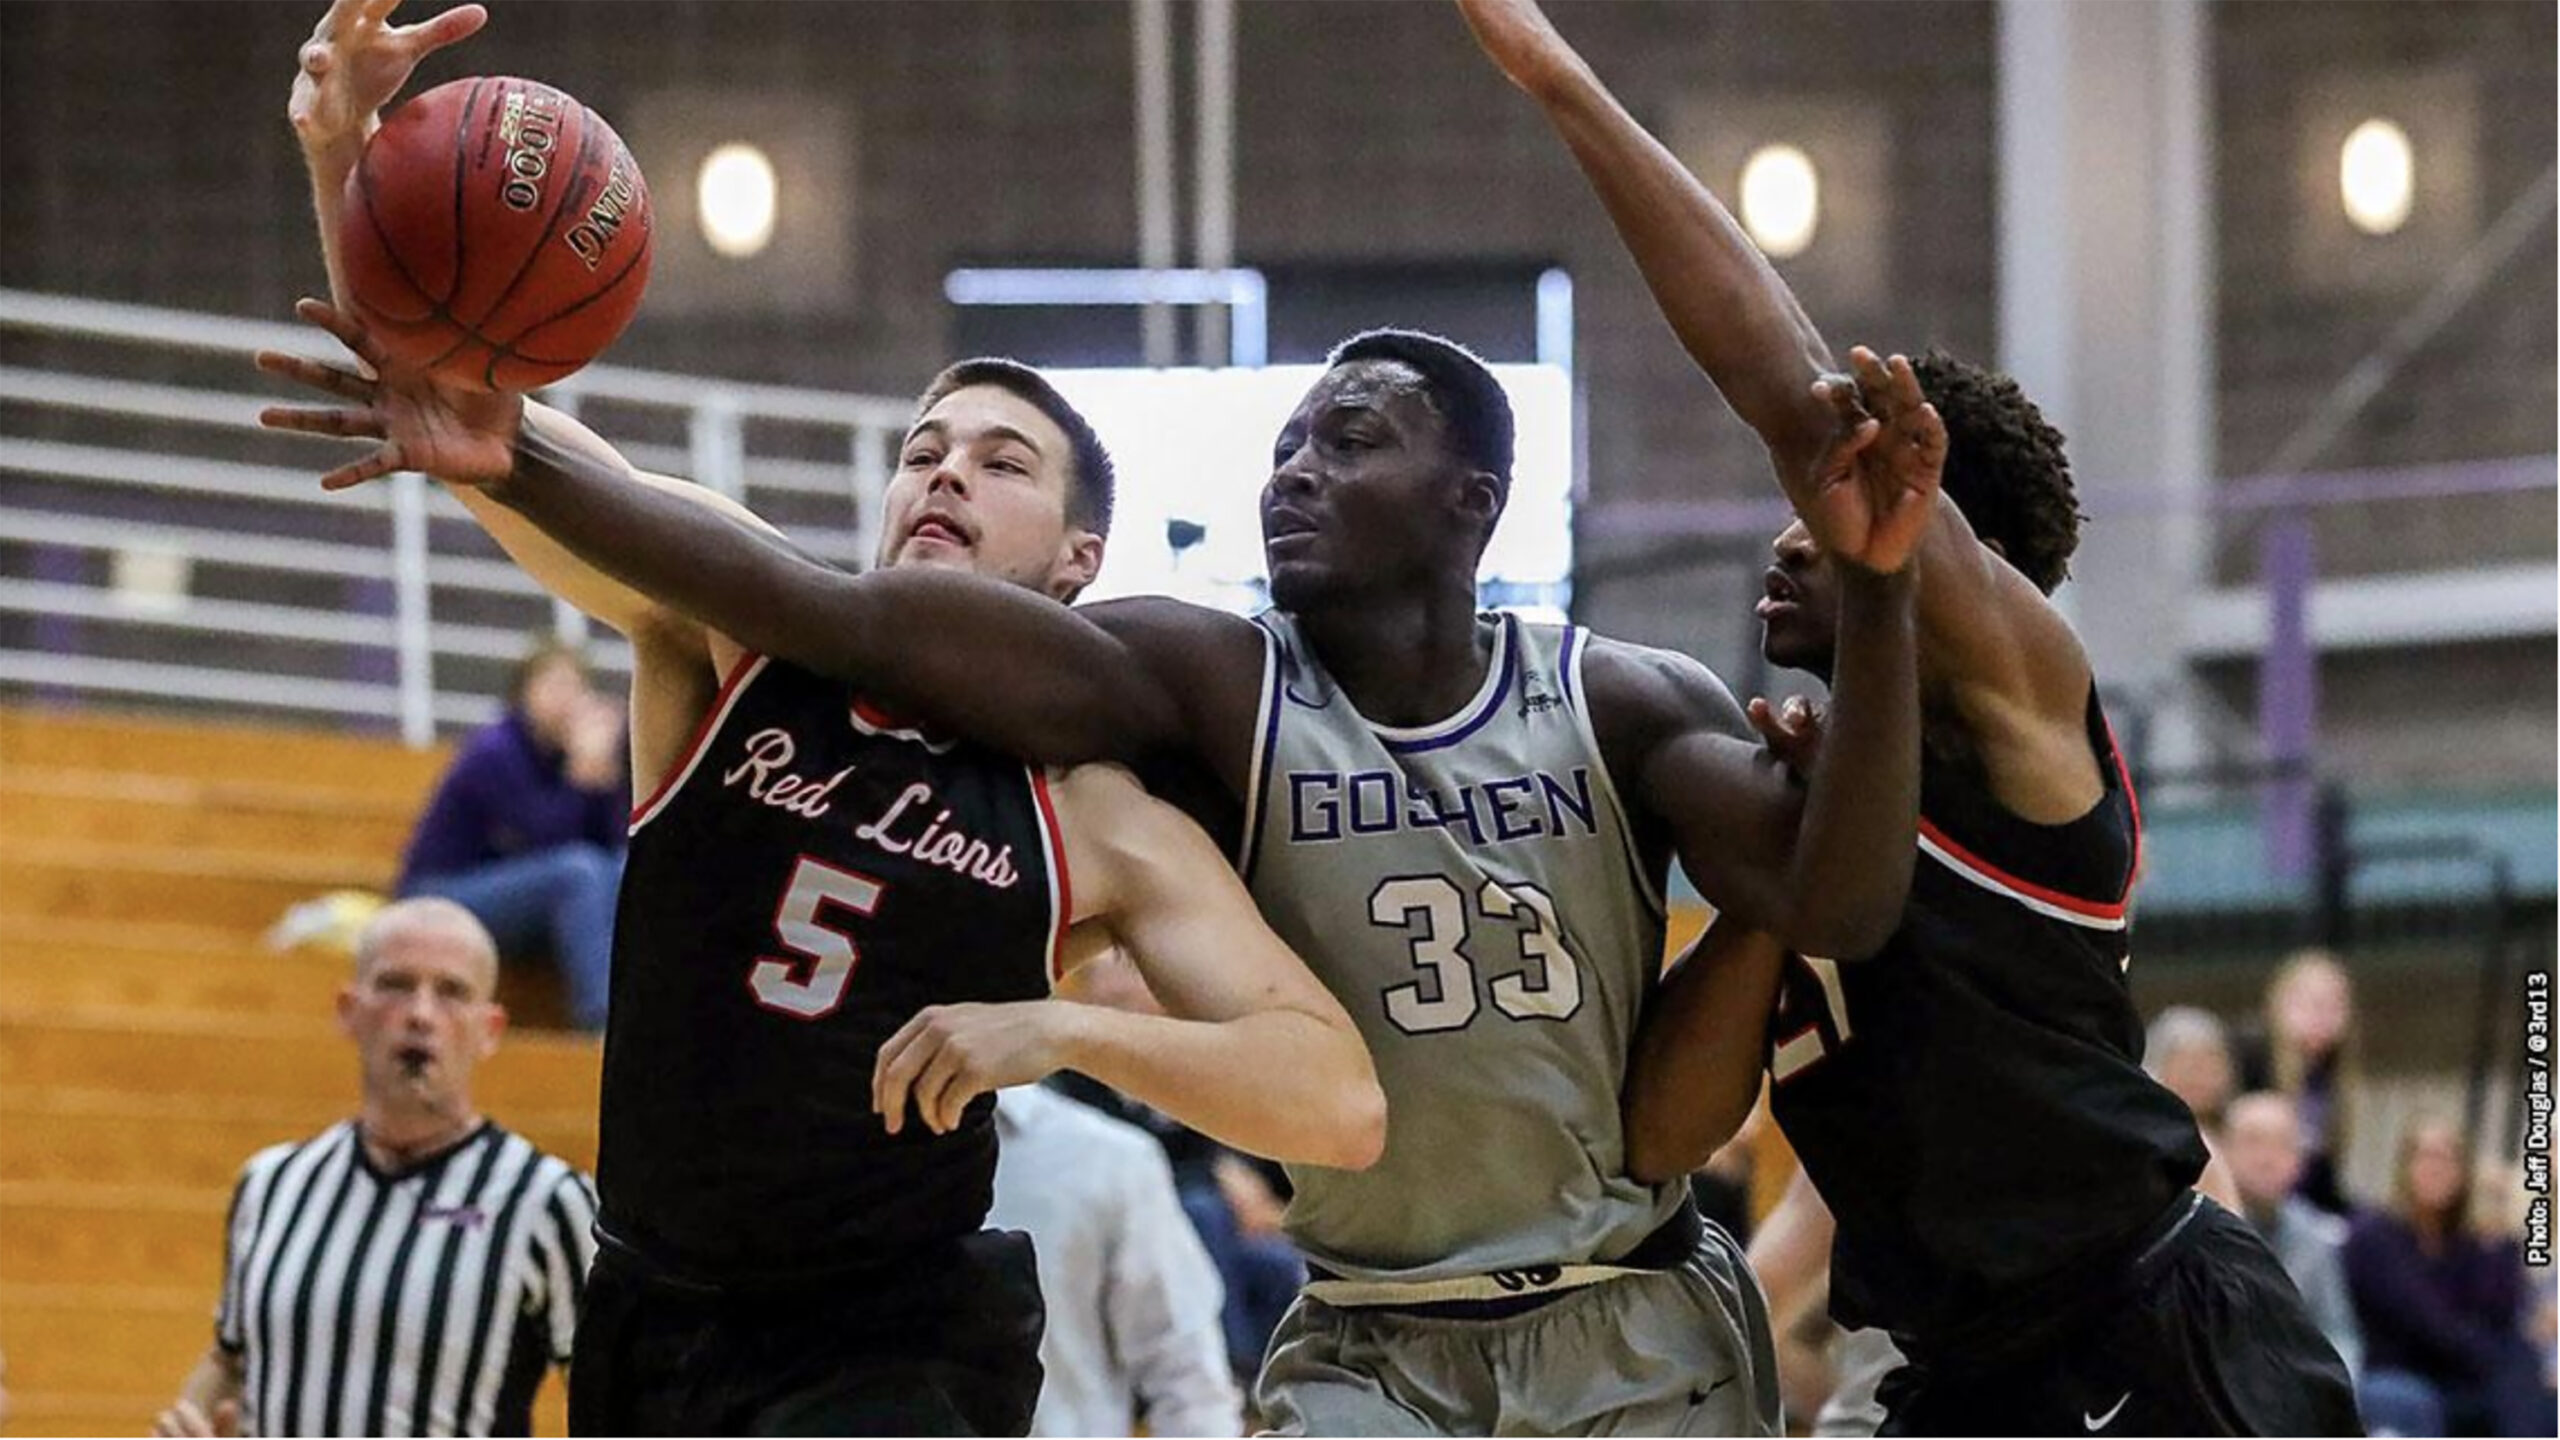 A player on the Goshen men's basketball team struggles to keep the ball away from two opposing players